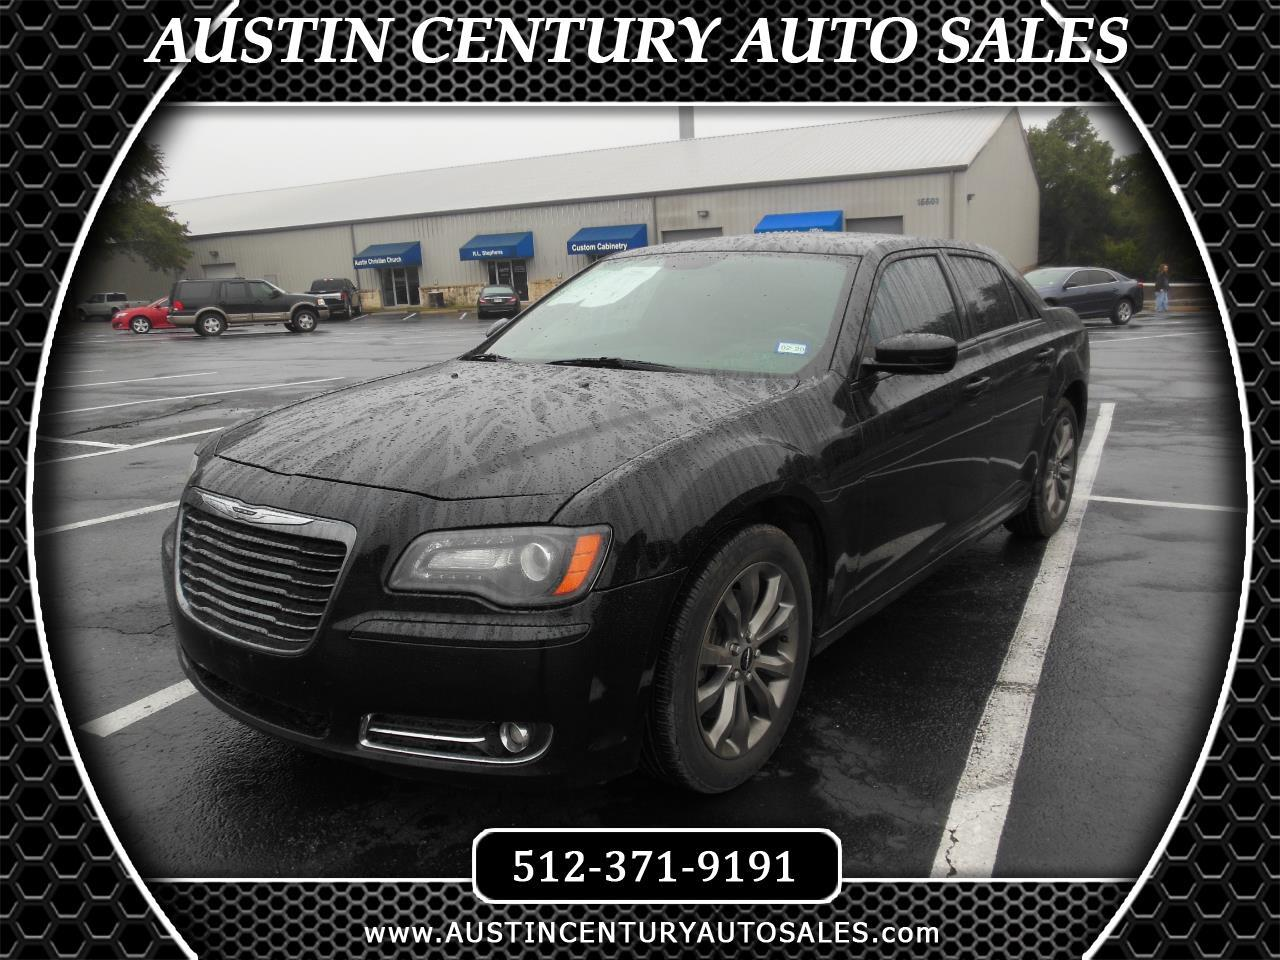 Chrysler 300 S V6 AWD 2014